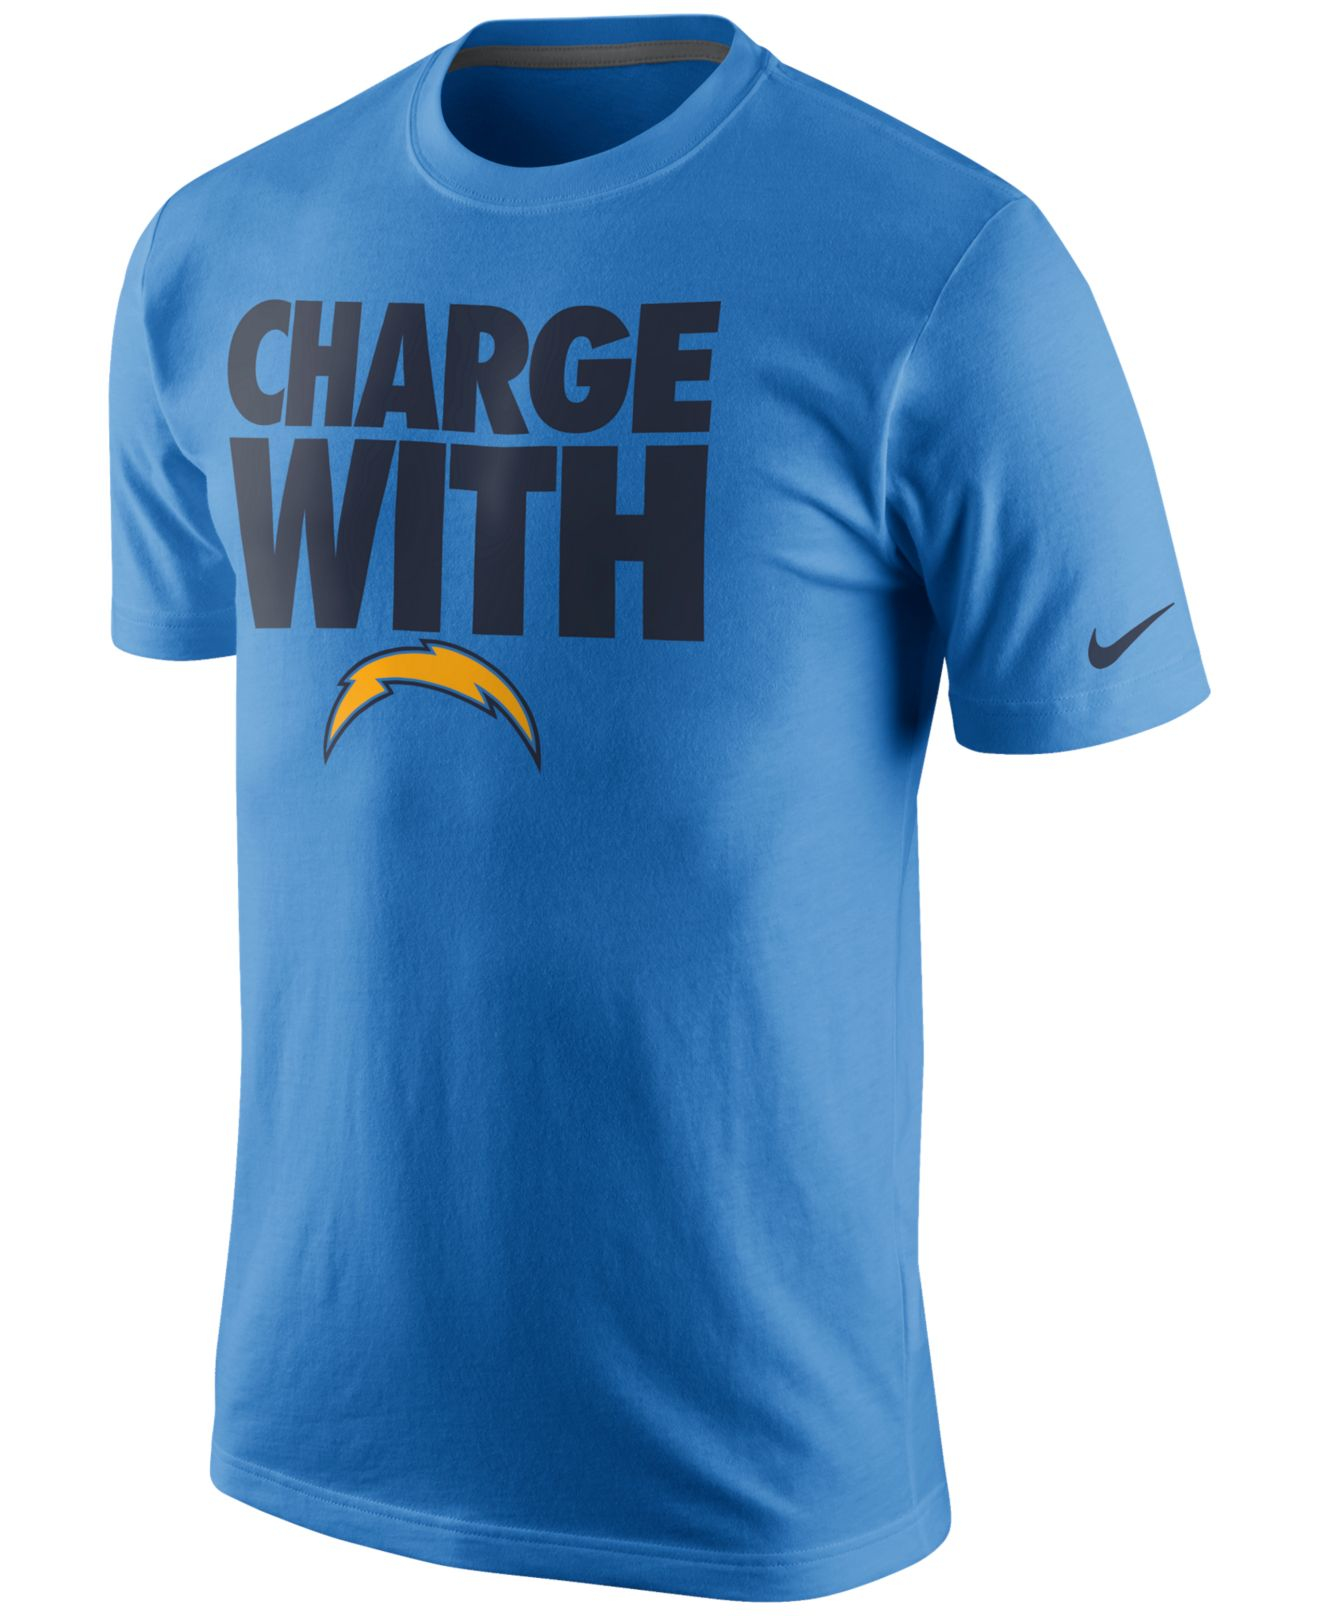 San Diego Chargers Clothing: Nike Men's San Diego Chargers Team Spirit T-shirt In Blue